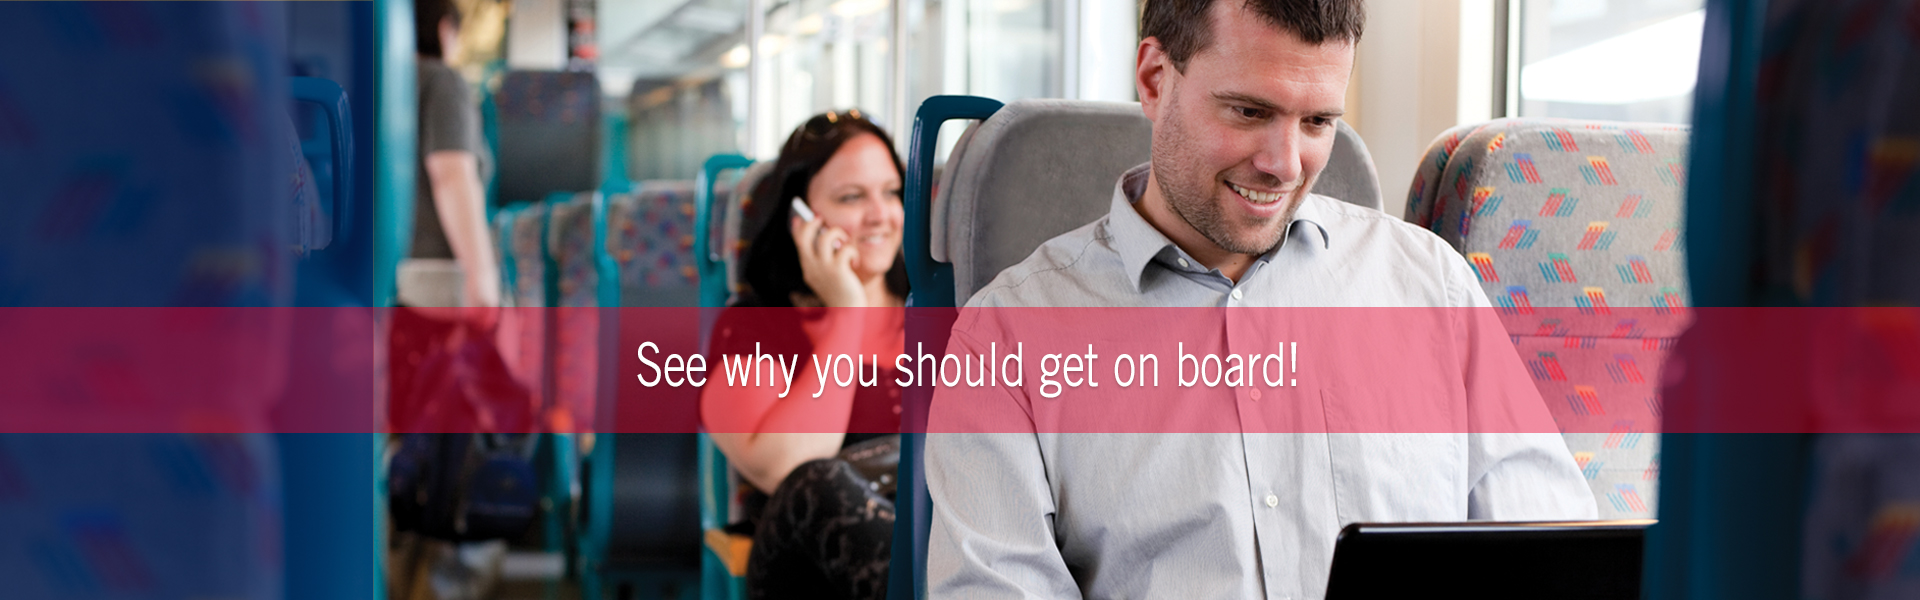 EasyRide - See why you should get on board